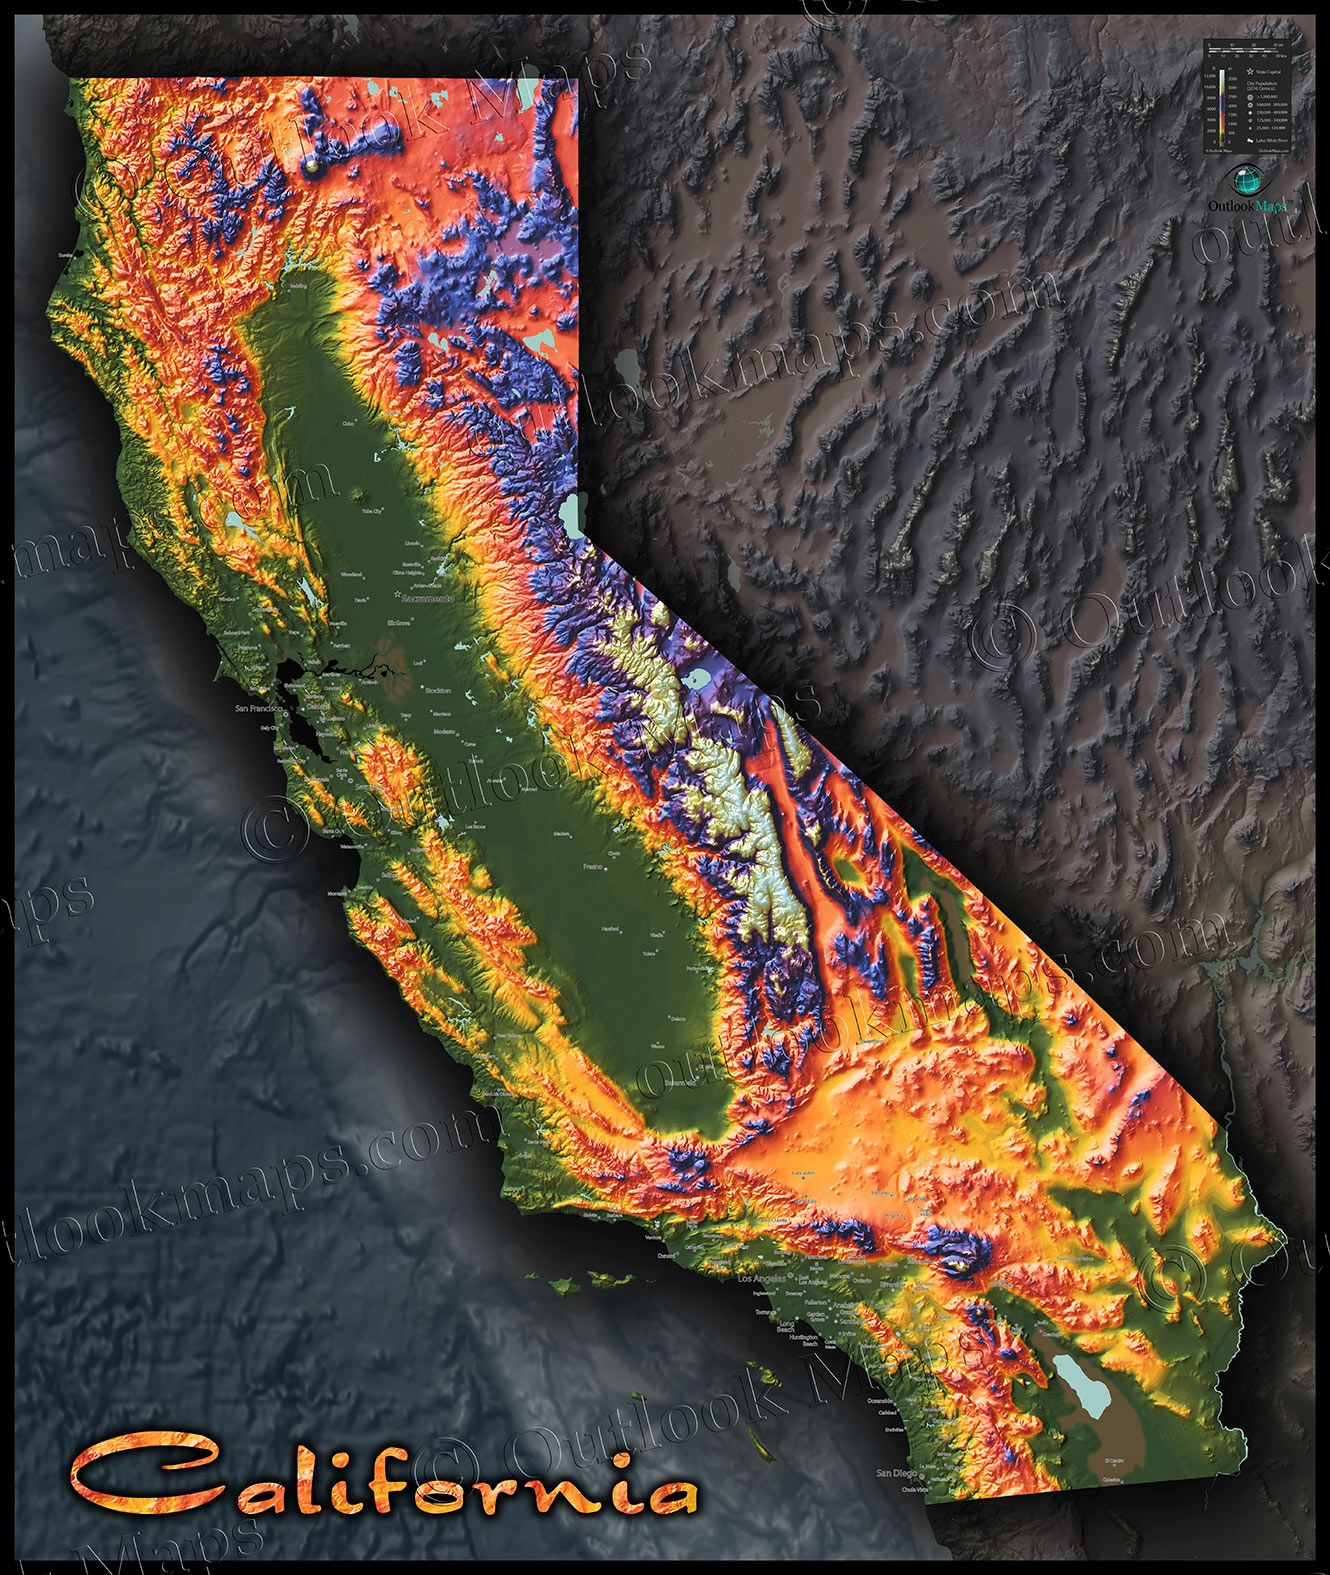 California Topographic Map | Map Designs by Outlook Maps | Pinterest ...